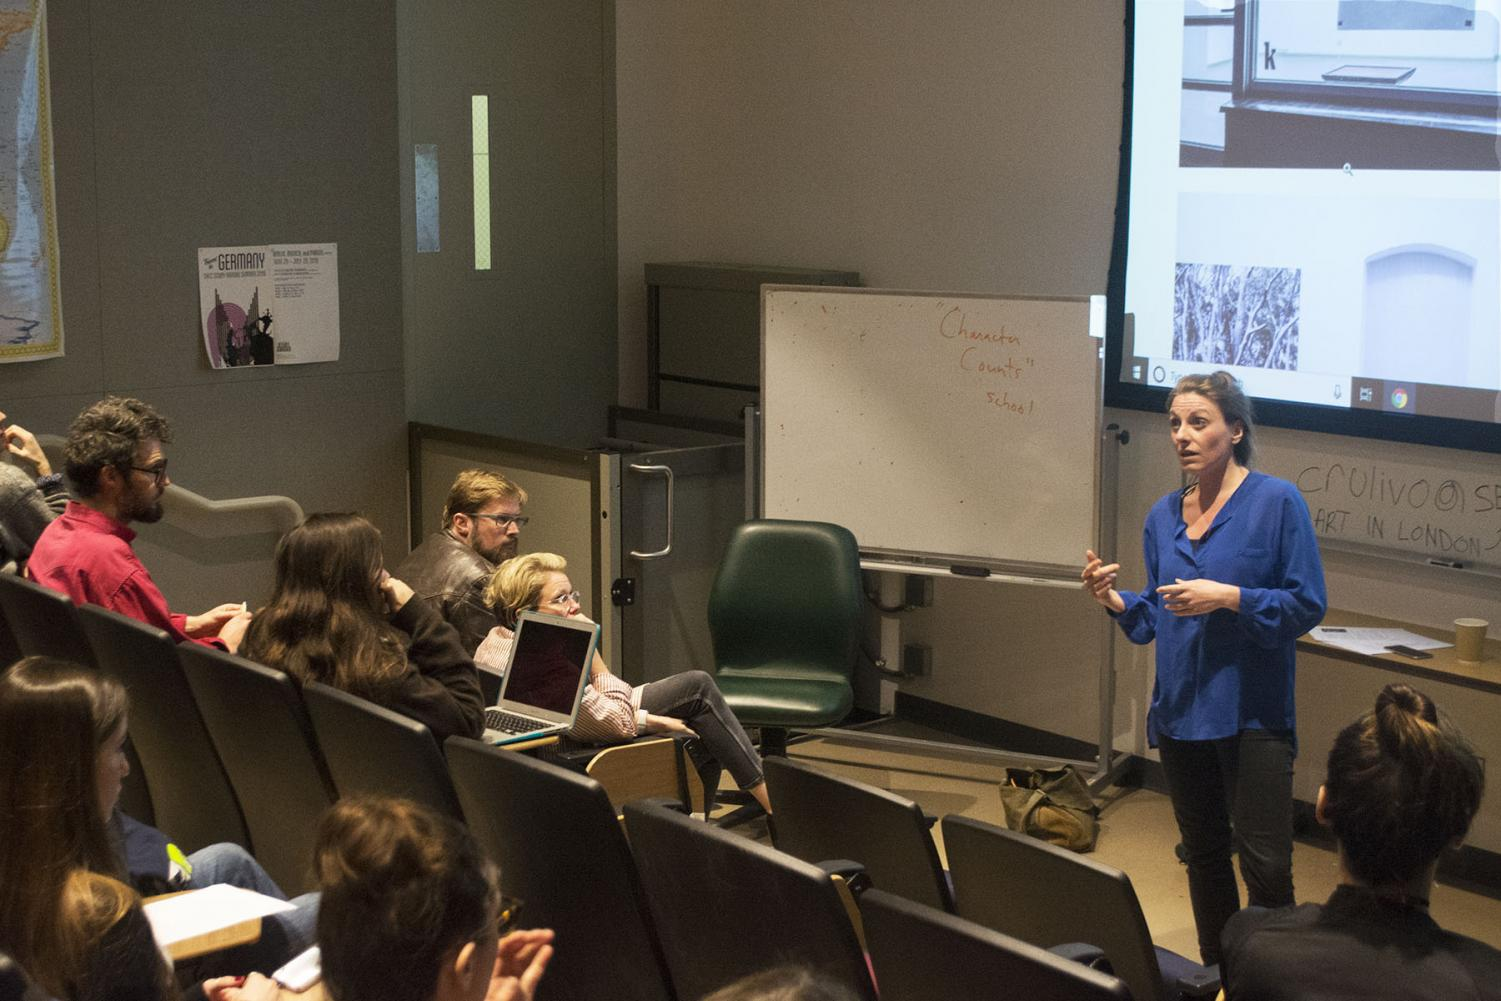 Mirjam Wendt explains her job as an art curator in museums and exhibits in the Humanities Building Room 111 on Thursday, March 7, 2019 at City College in Santa Barbara, Calif.